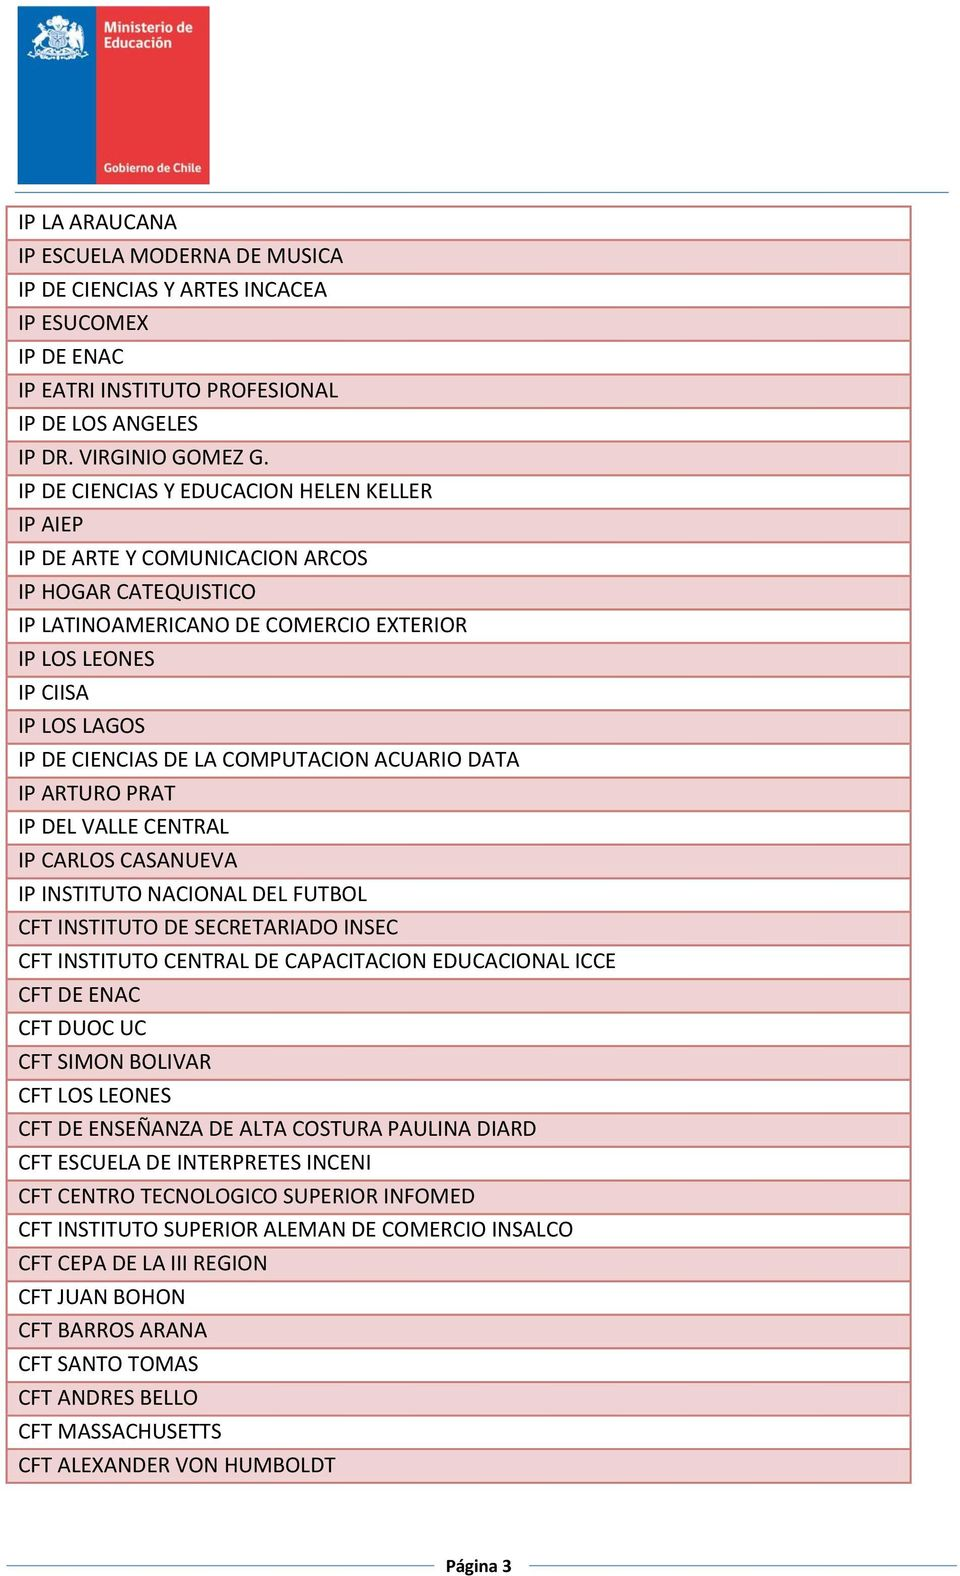 COMPUTACION ACUARIO DATA IP ARTURO PRAT IP DEL VALLE CENTRAL IP CARLOS CASANUEVA IP INSTITUTO NACIONAL DEL FUTBOL CFT INSTITUTO DE SECRETARIADO INSEC CFT INSTITUTO CENTRAL DE CAPACITACION EDUCACIONAL